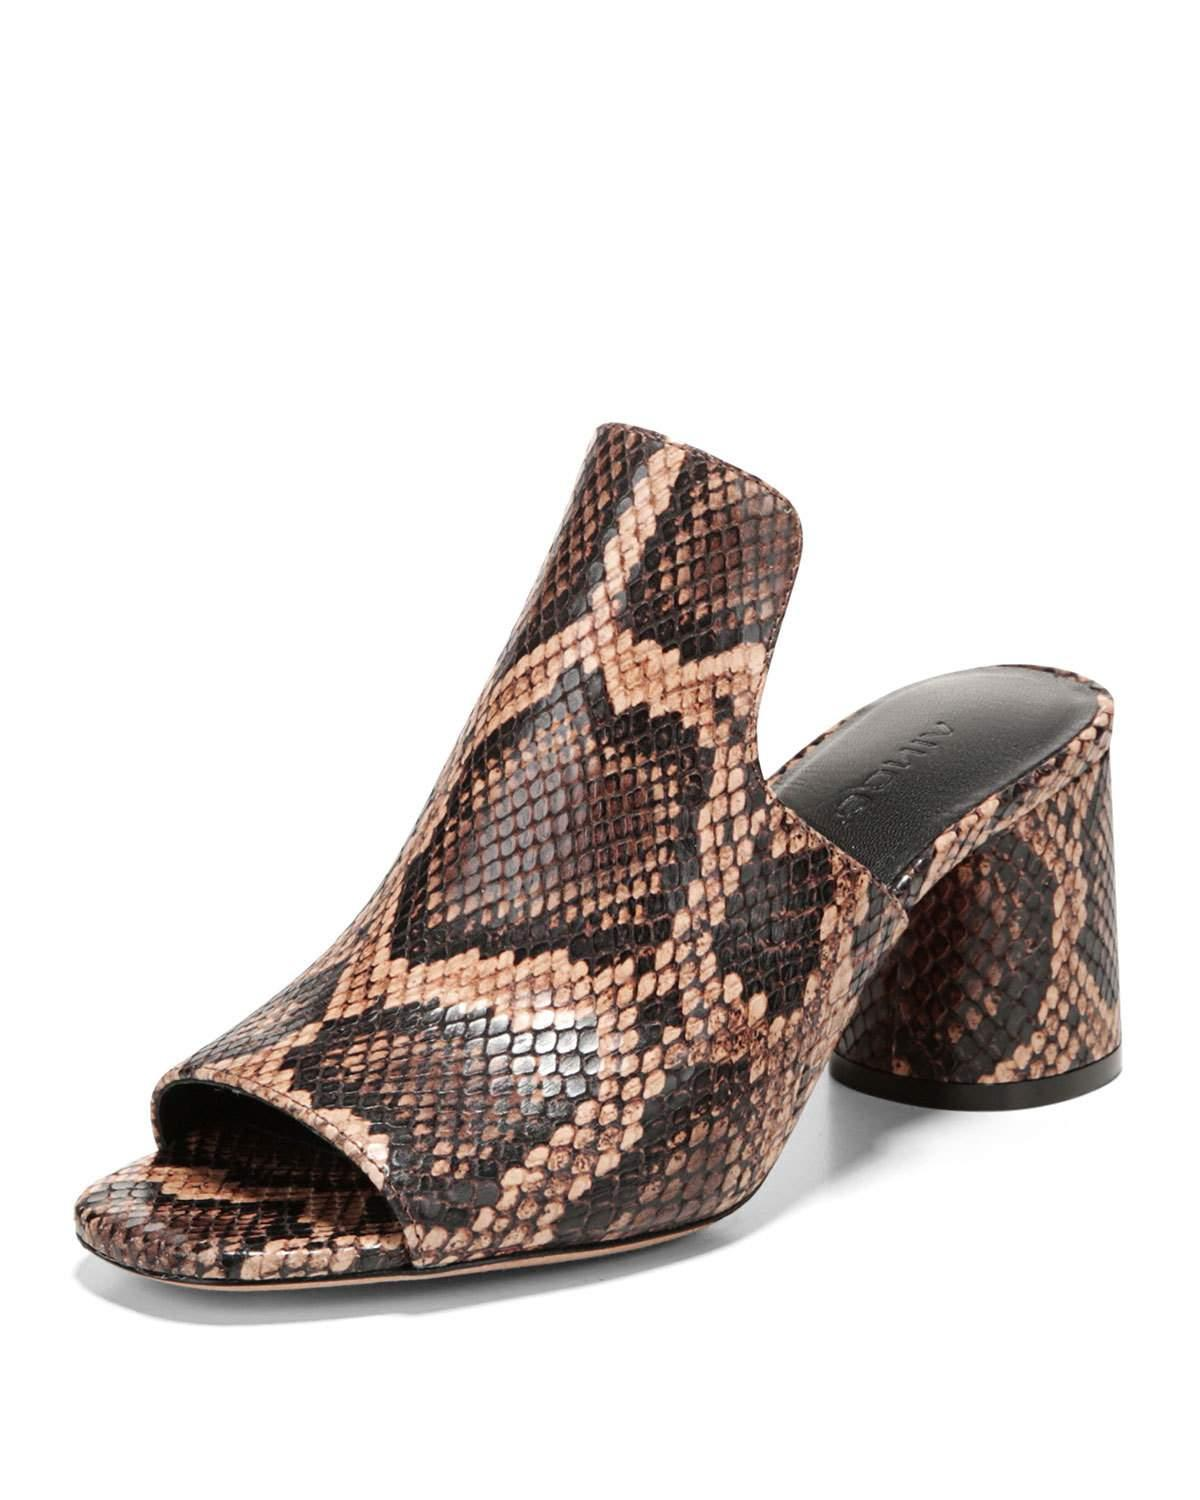 28702debc1d ... bring geometric counterpoint to the column heel of a tall loafer mule  styled for day-to-night versatility. Style Name  Vince Tanay Loafer Mule  (Women).